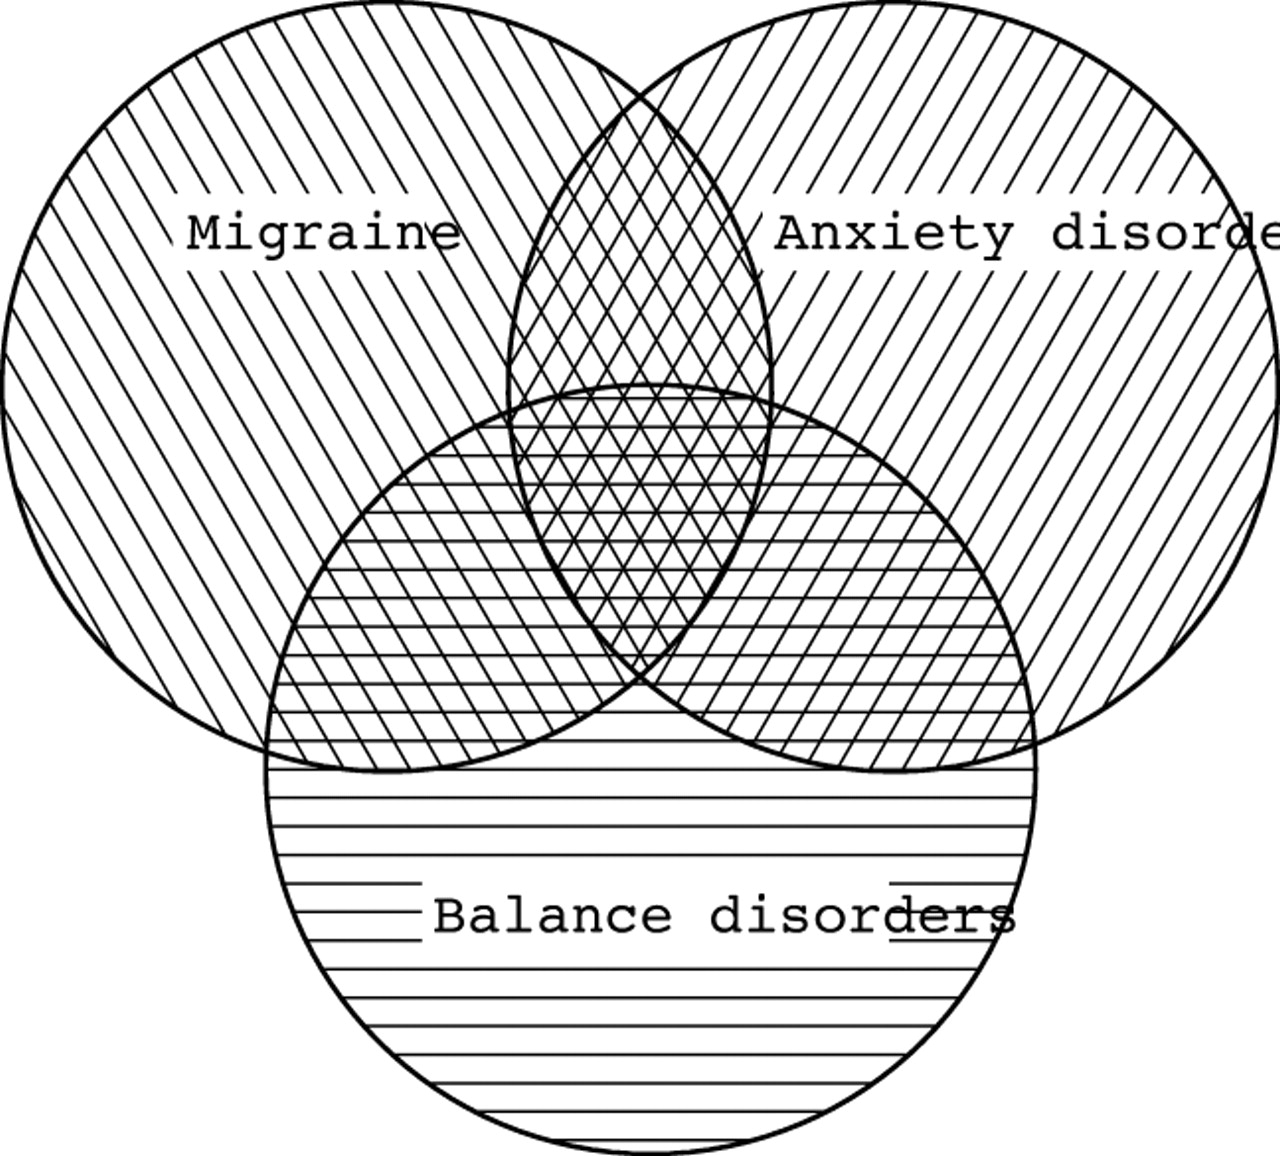 migraine u2013anxiety related dizziness  mard   a new disorder